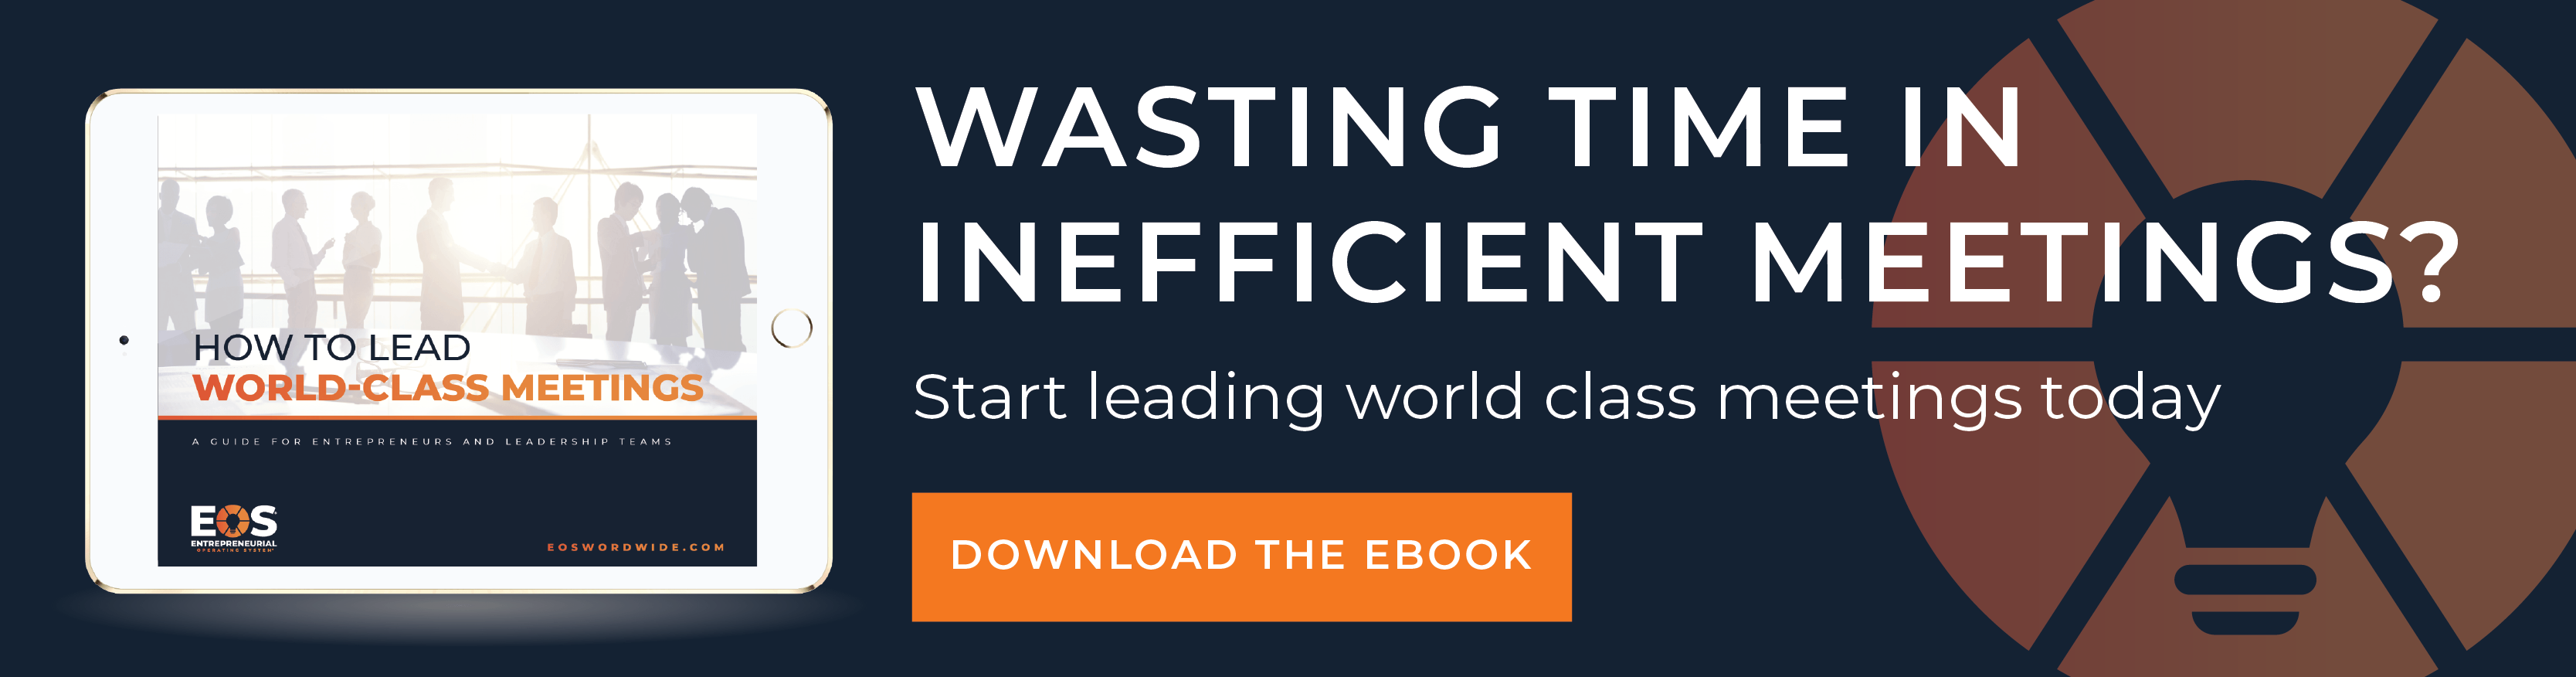 Learn How to Lead World-Class Meetings